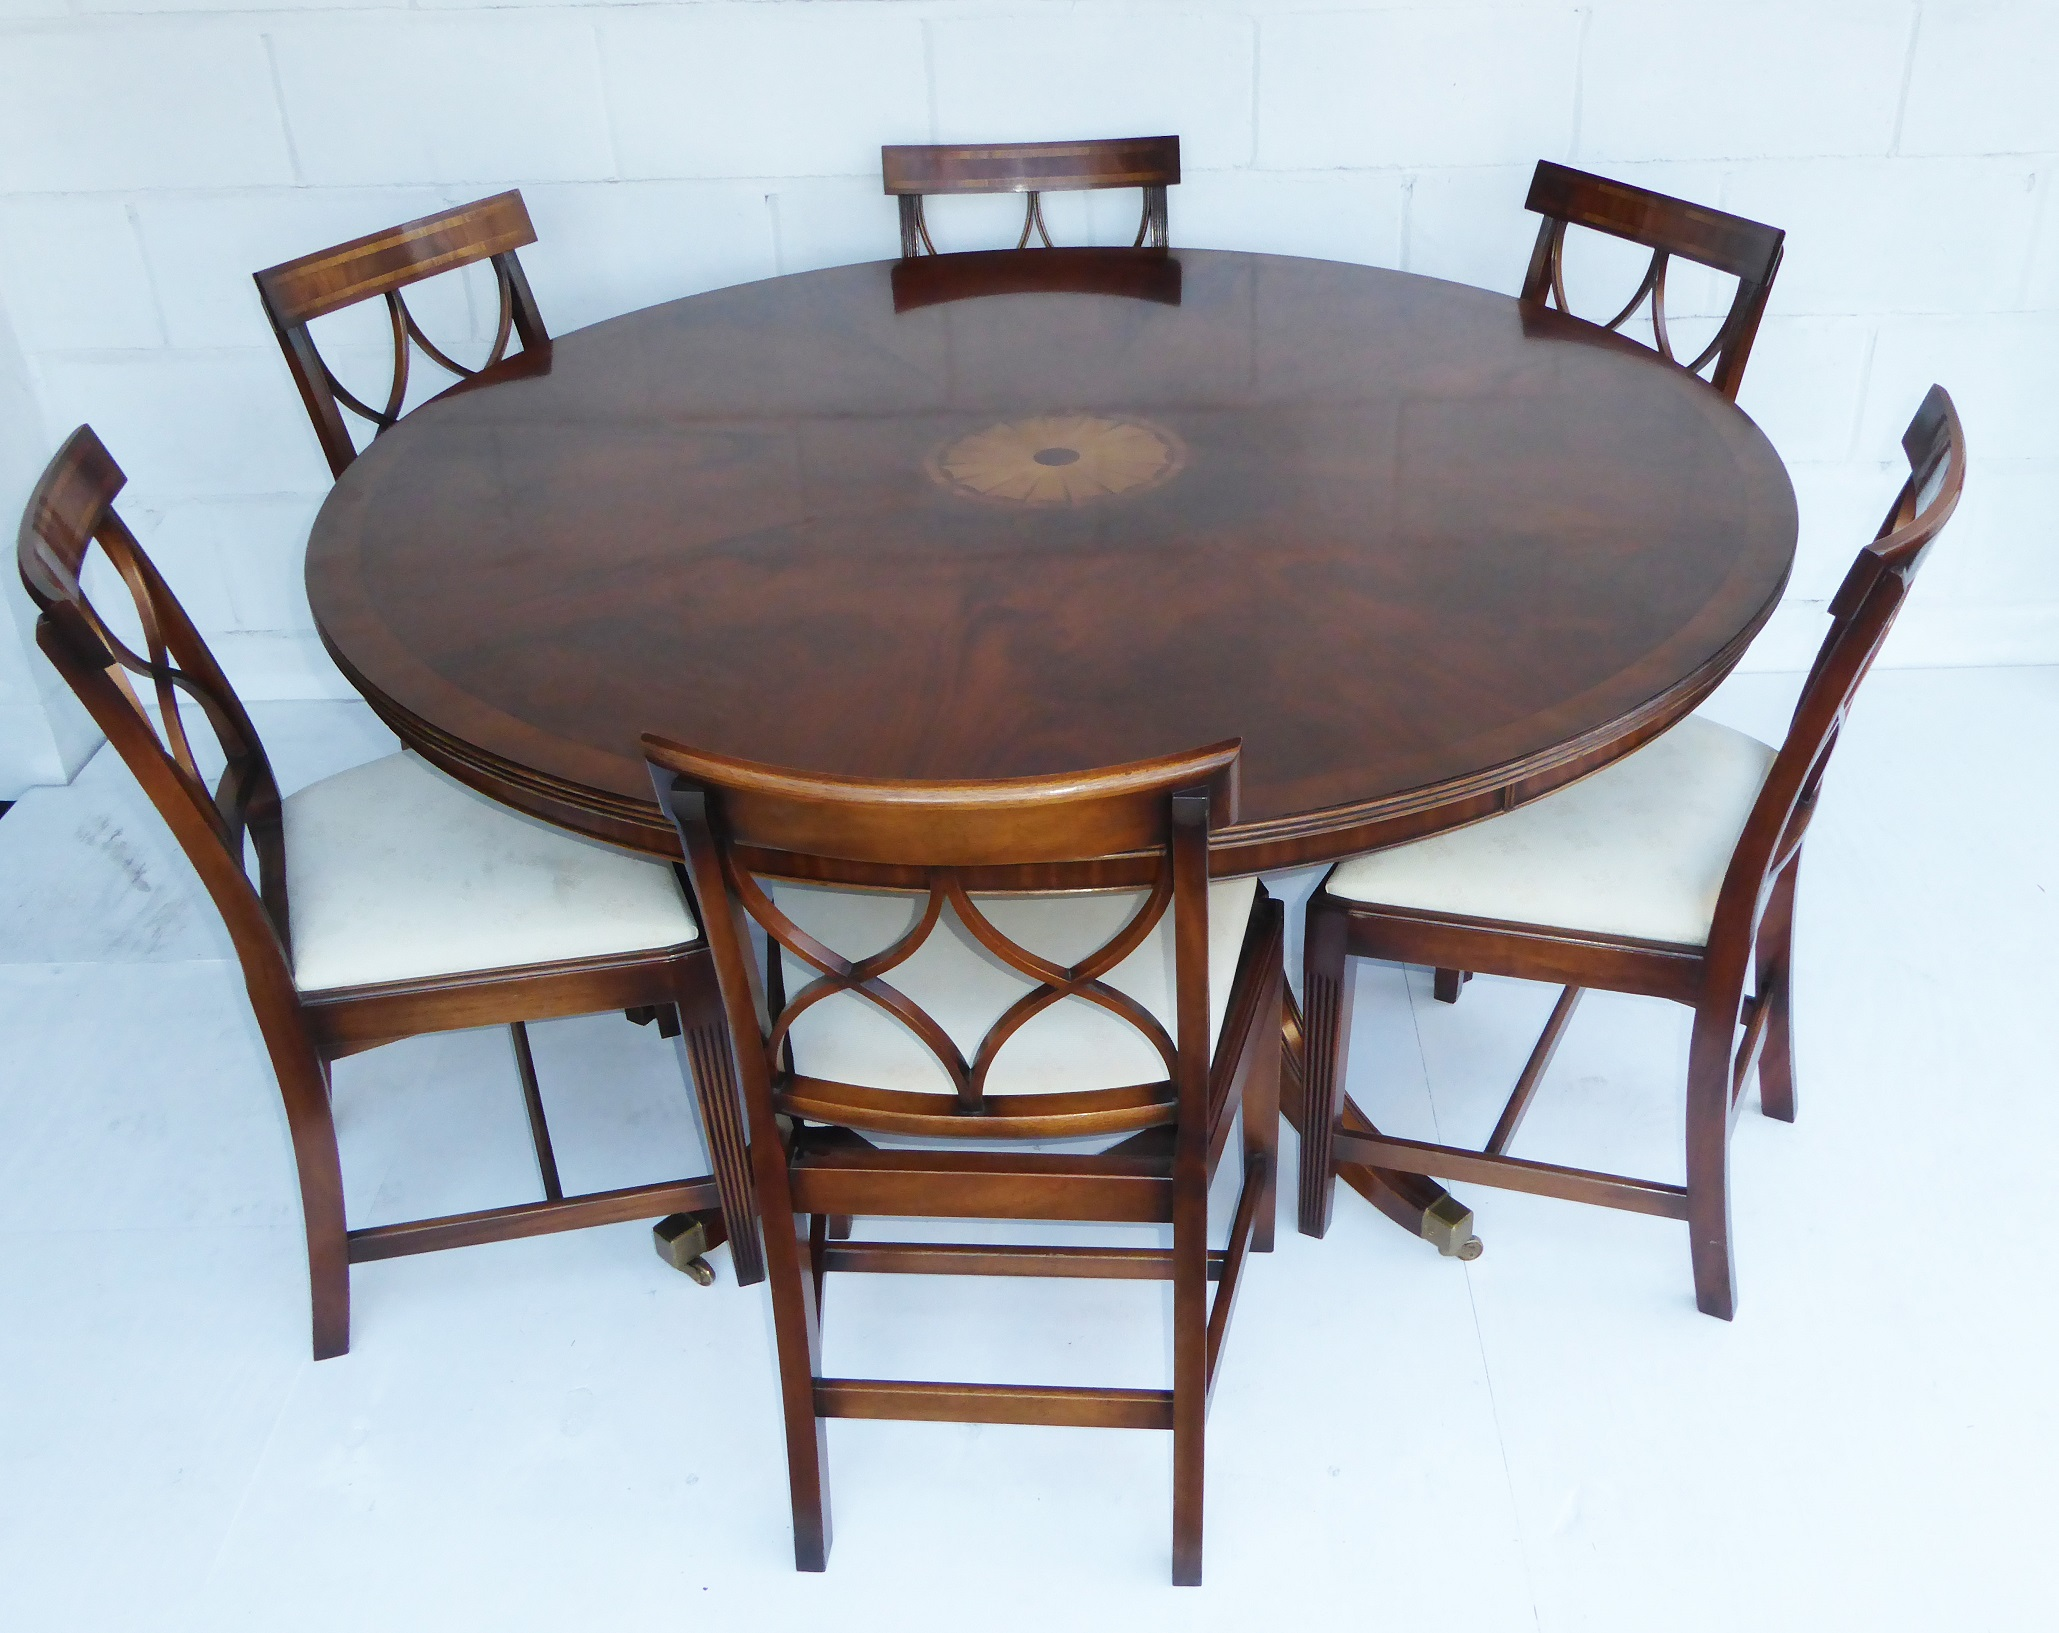 breathtaking dining table with 6 chairs photos designs